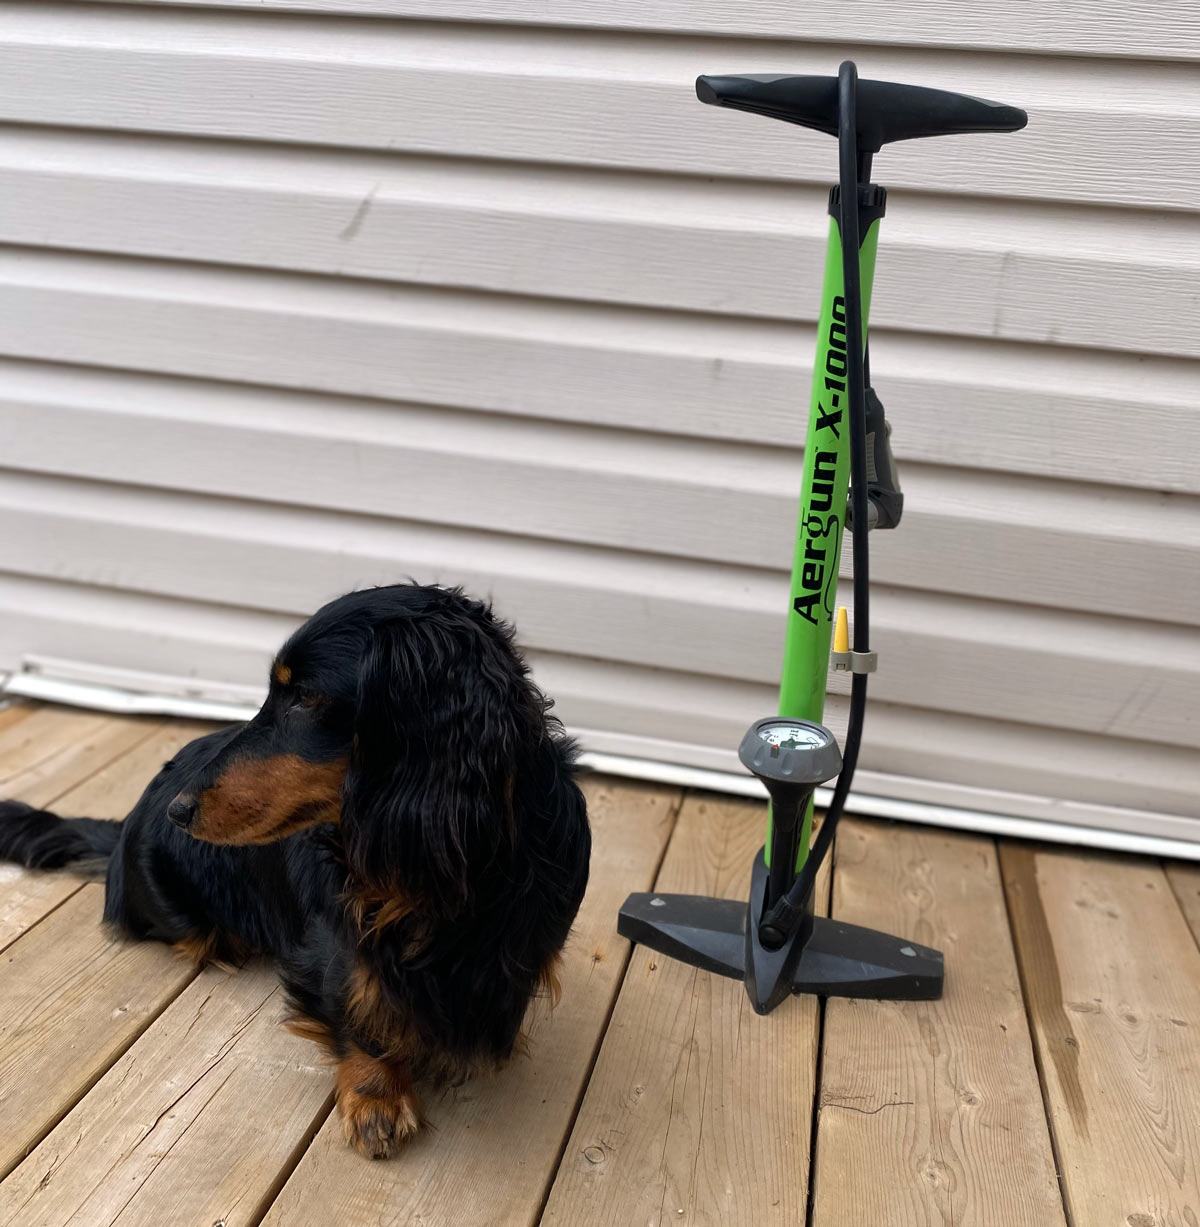 bicycle floor pump with a dog next to it